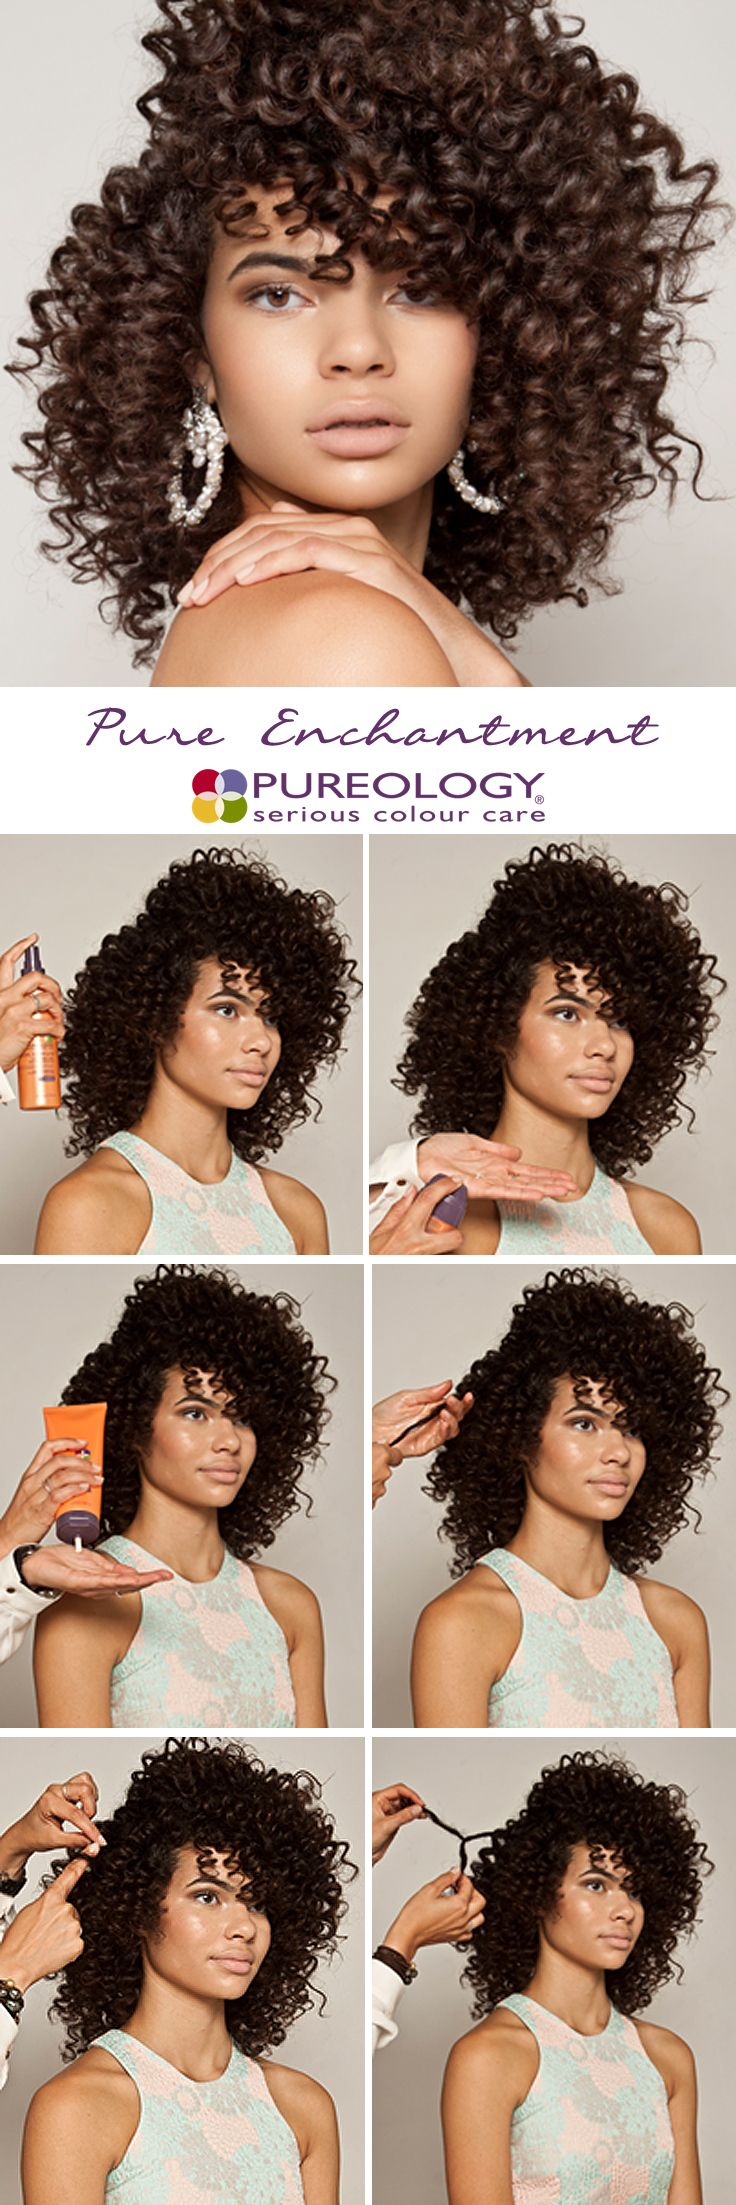 Curly hairstyles tutorials - Natural Curly Hair Tutorial By Pureology Using New Curl Complete